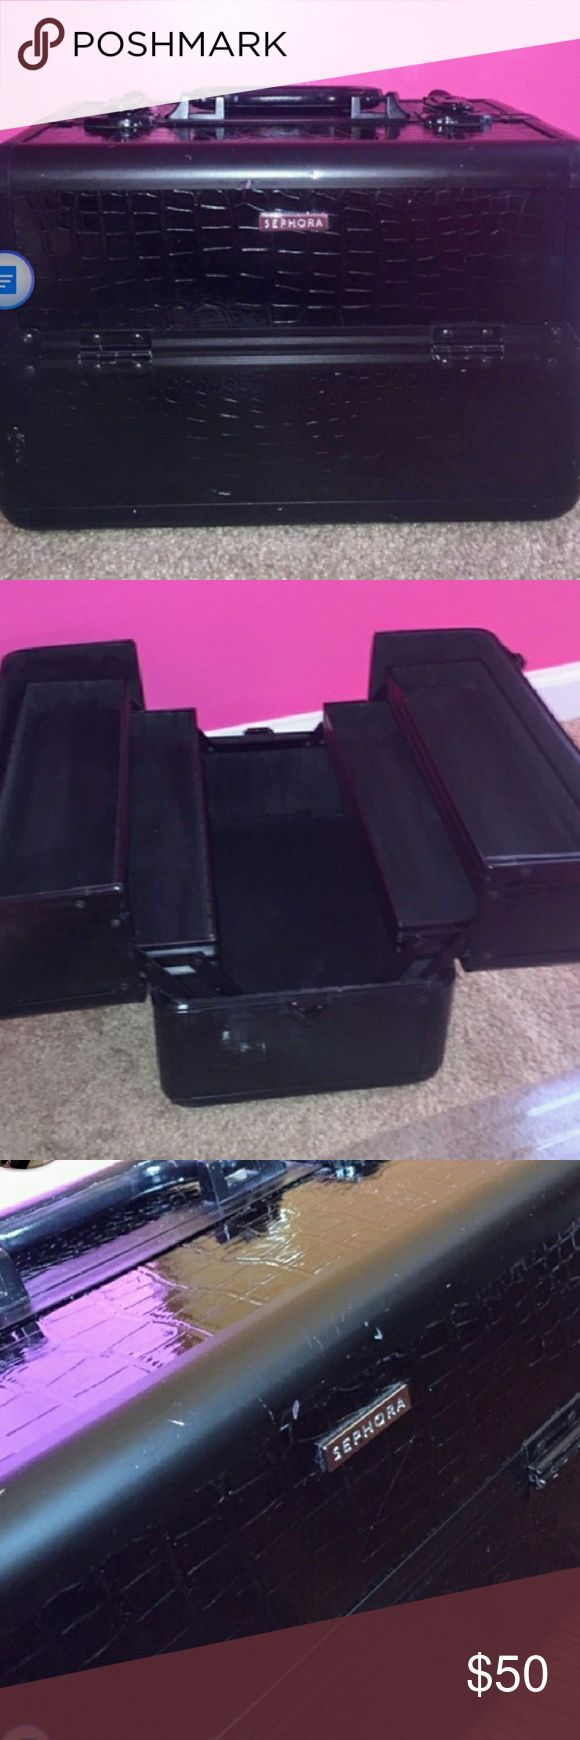 Sephora make up box Moving sale!!! Classy make up box with many compartments. Cleaned? up and ready for delivery. Sephora Makeup